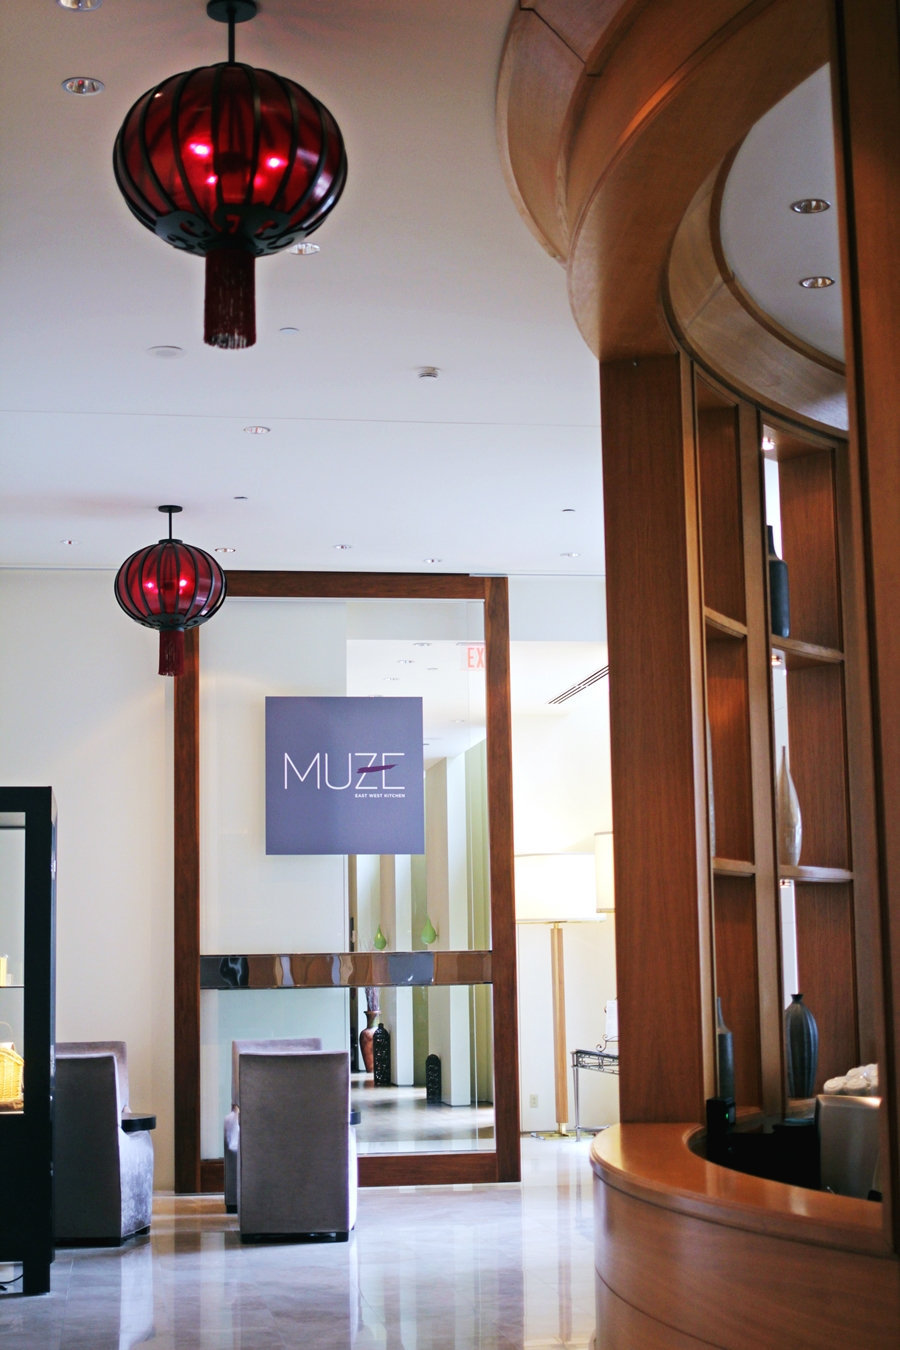 muze restaurant washington dc